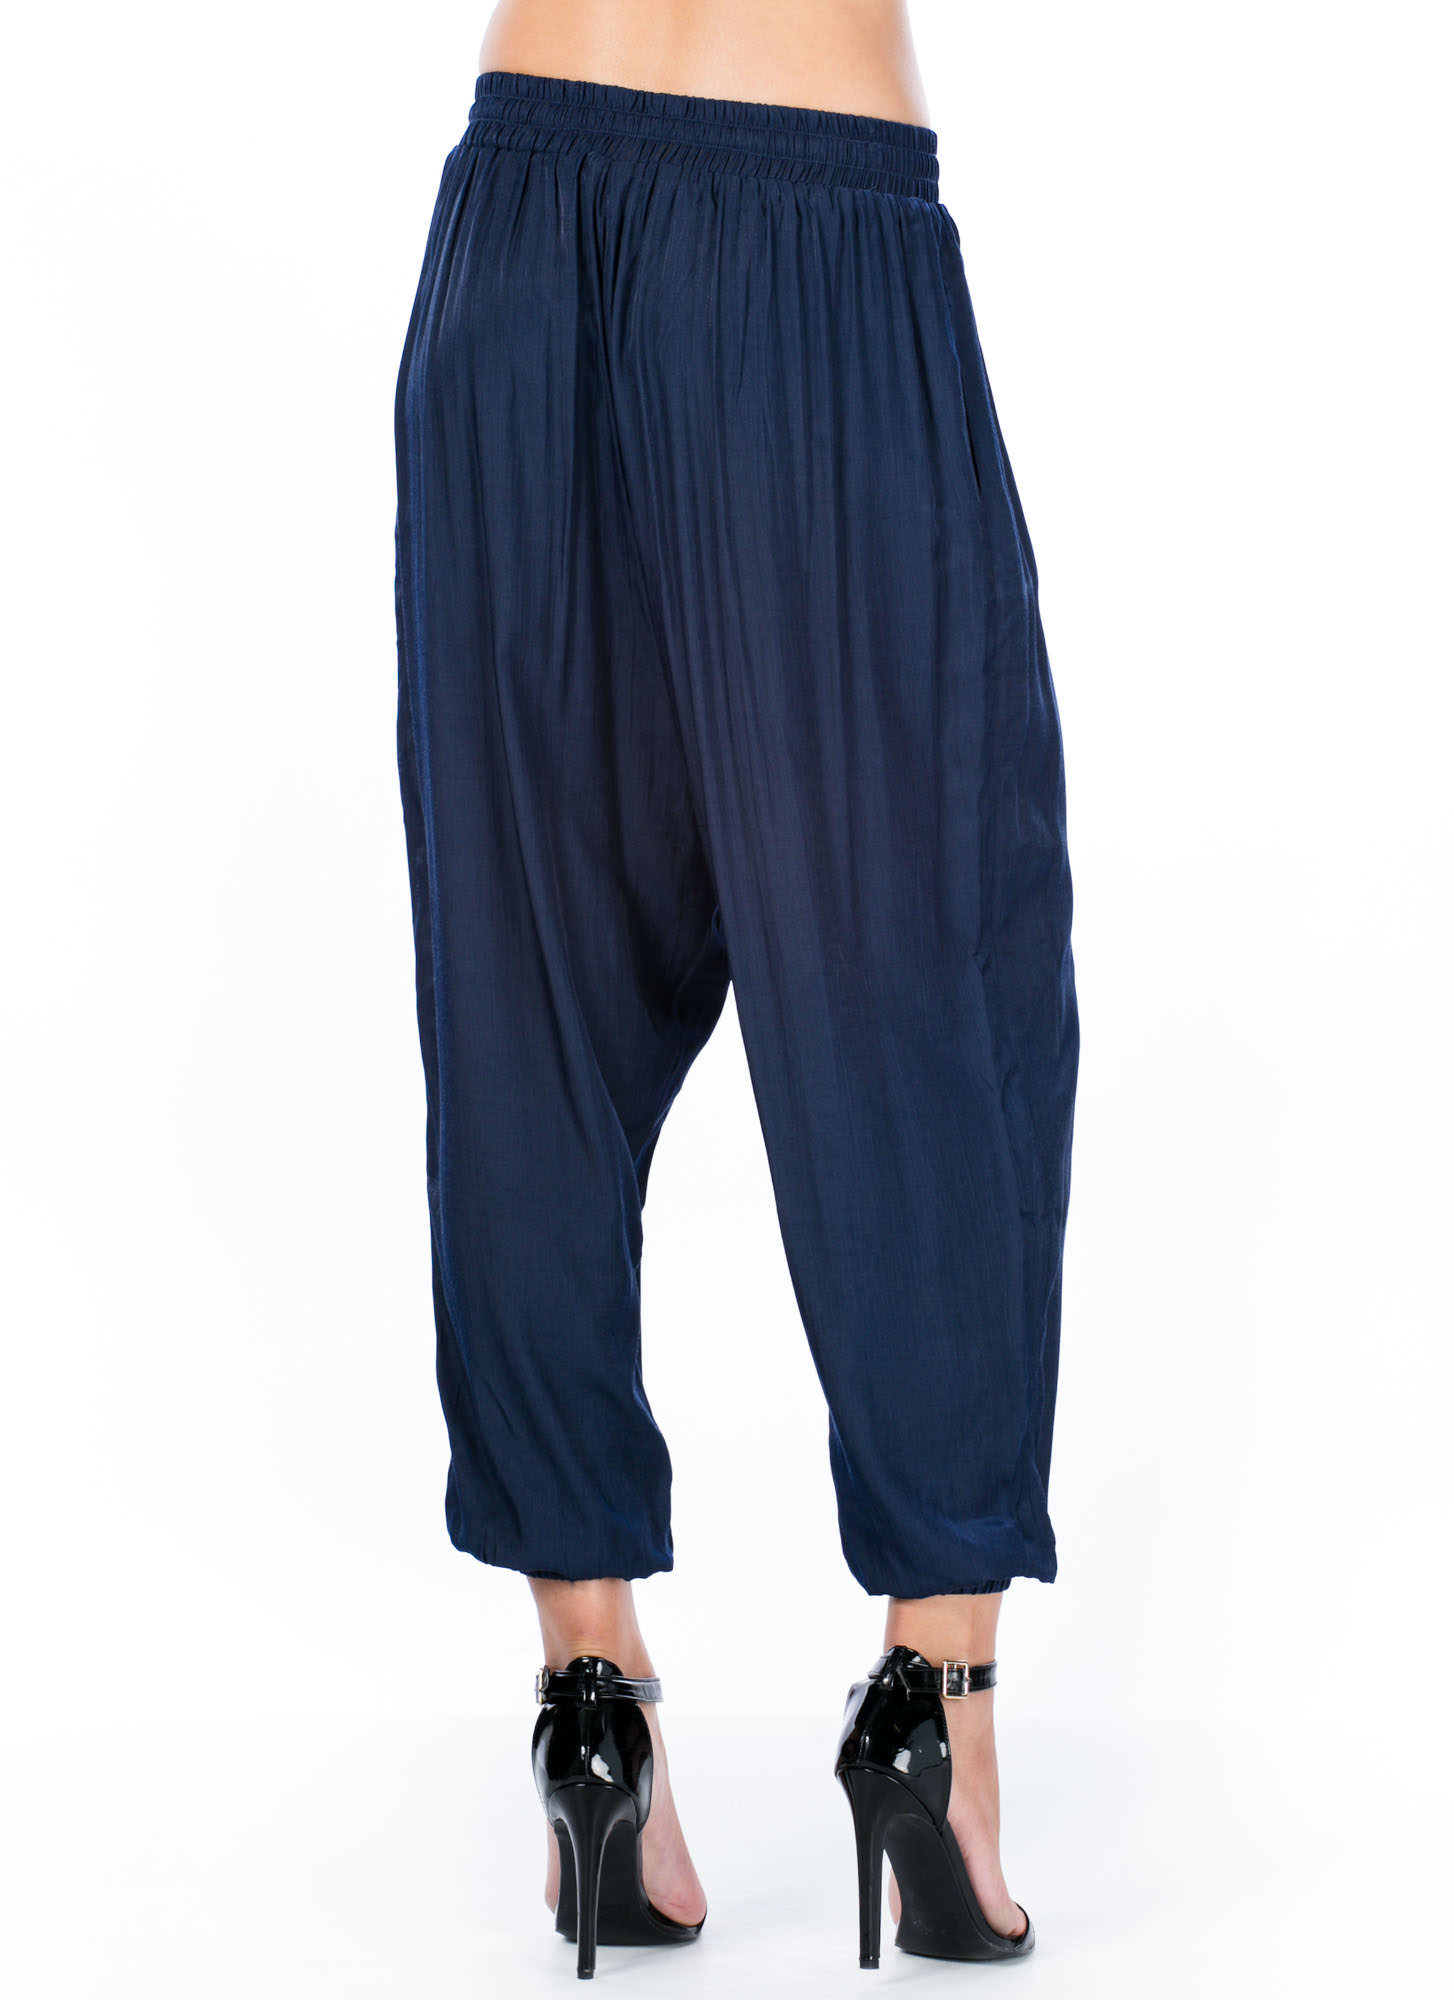 Sit Back 'N Relaxed Fit Joggers NAVY